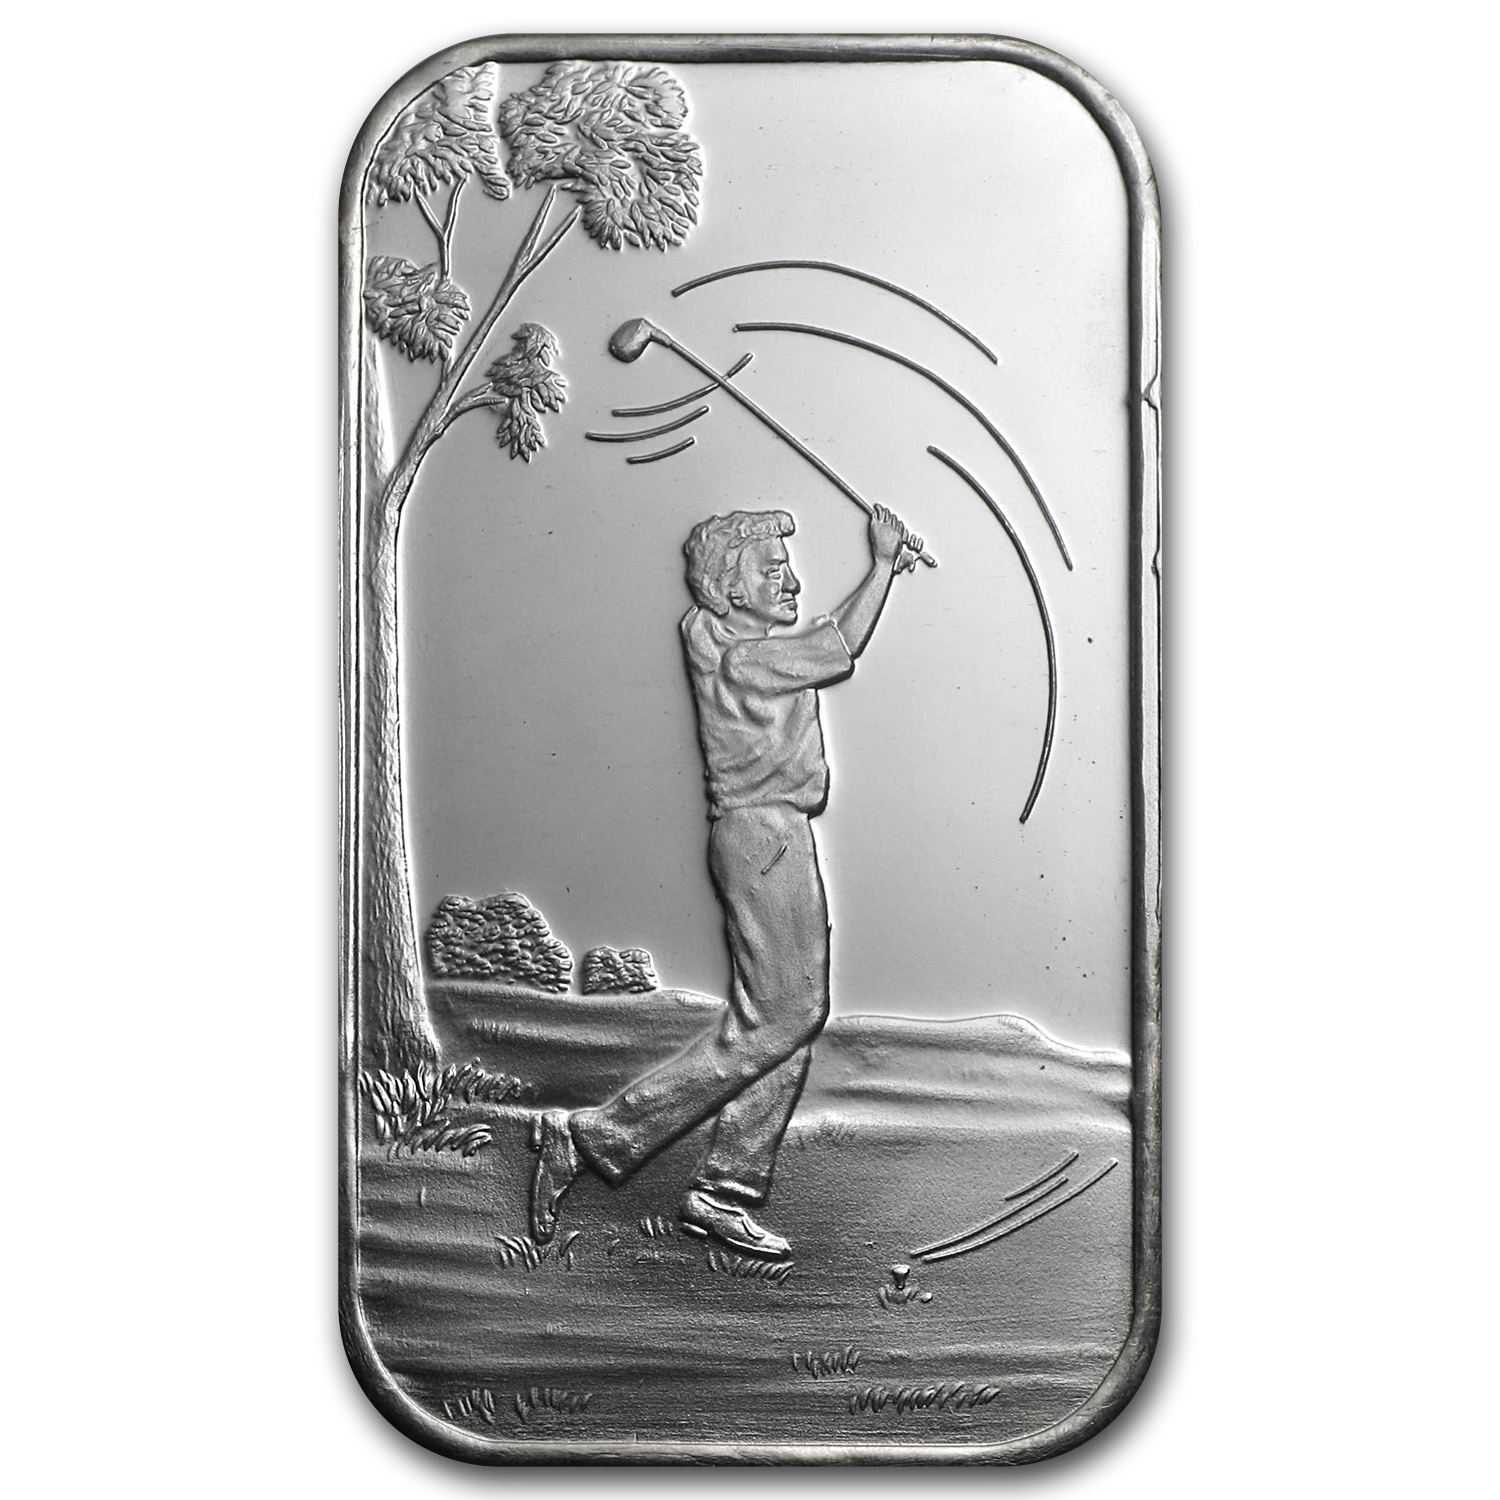 1 oz Silver Bar - Male Golfer